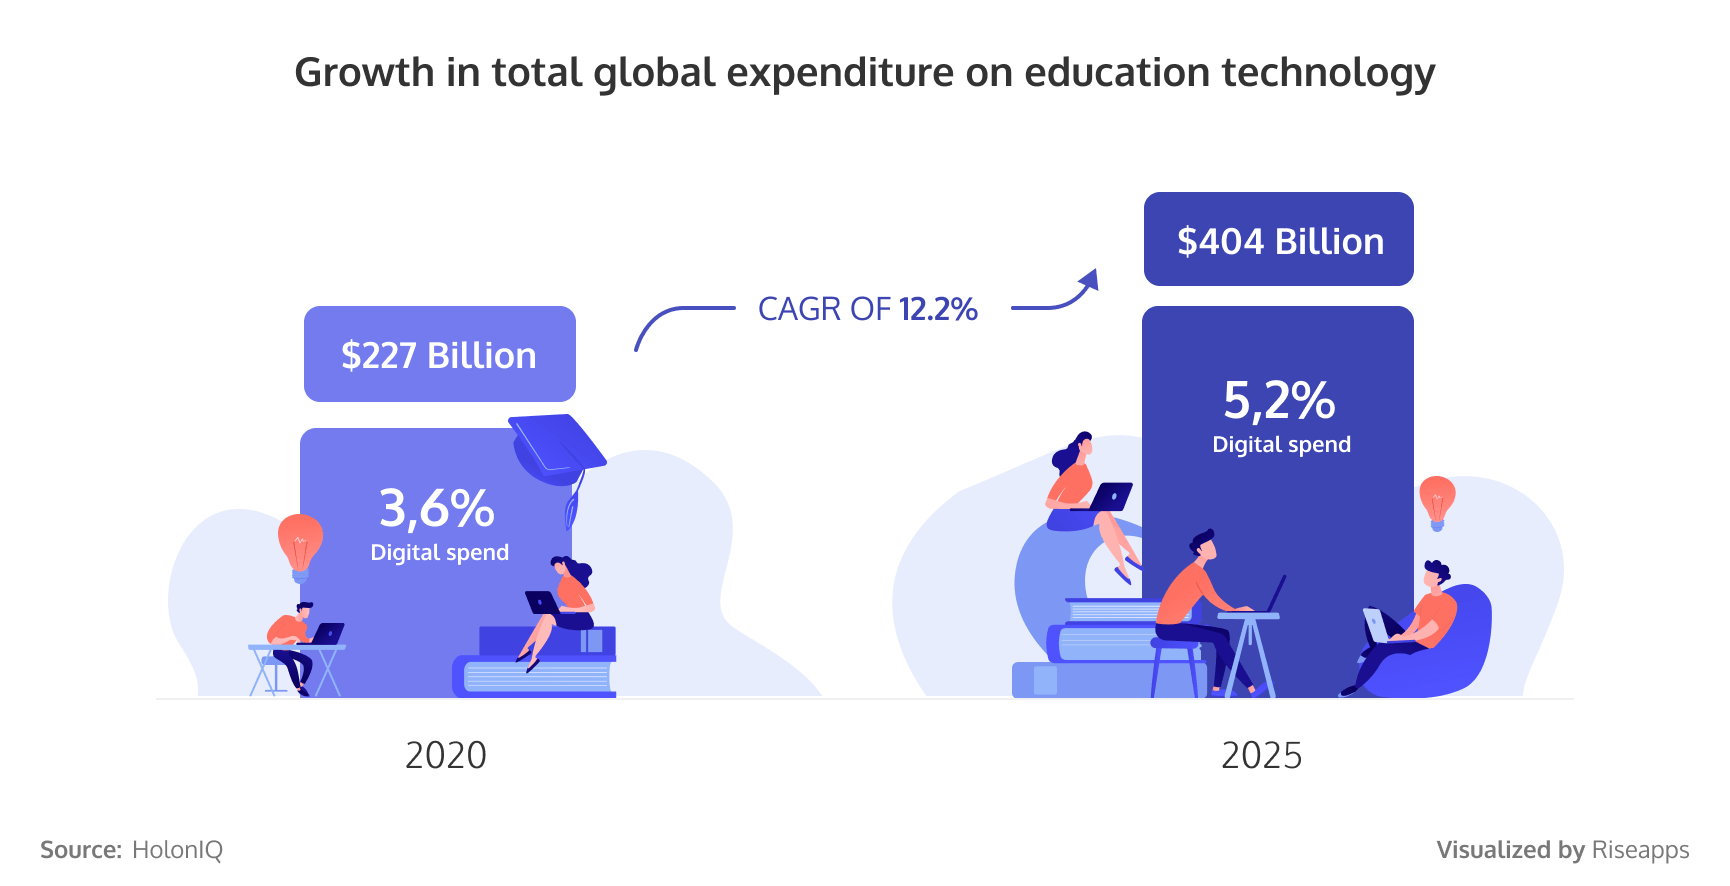 Growth in total global expenditure on education technology